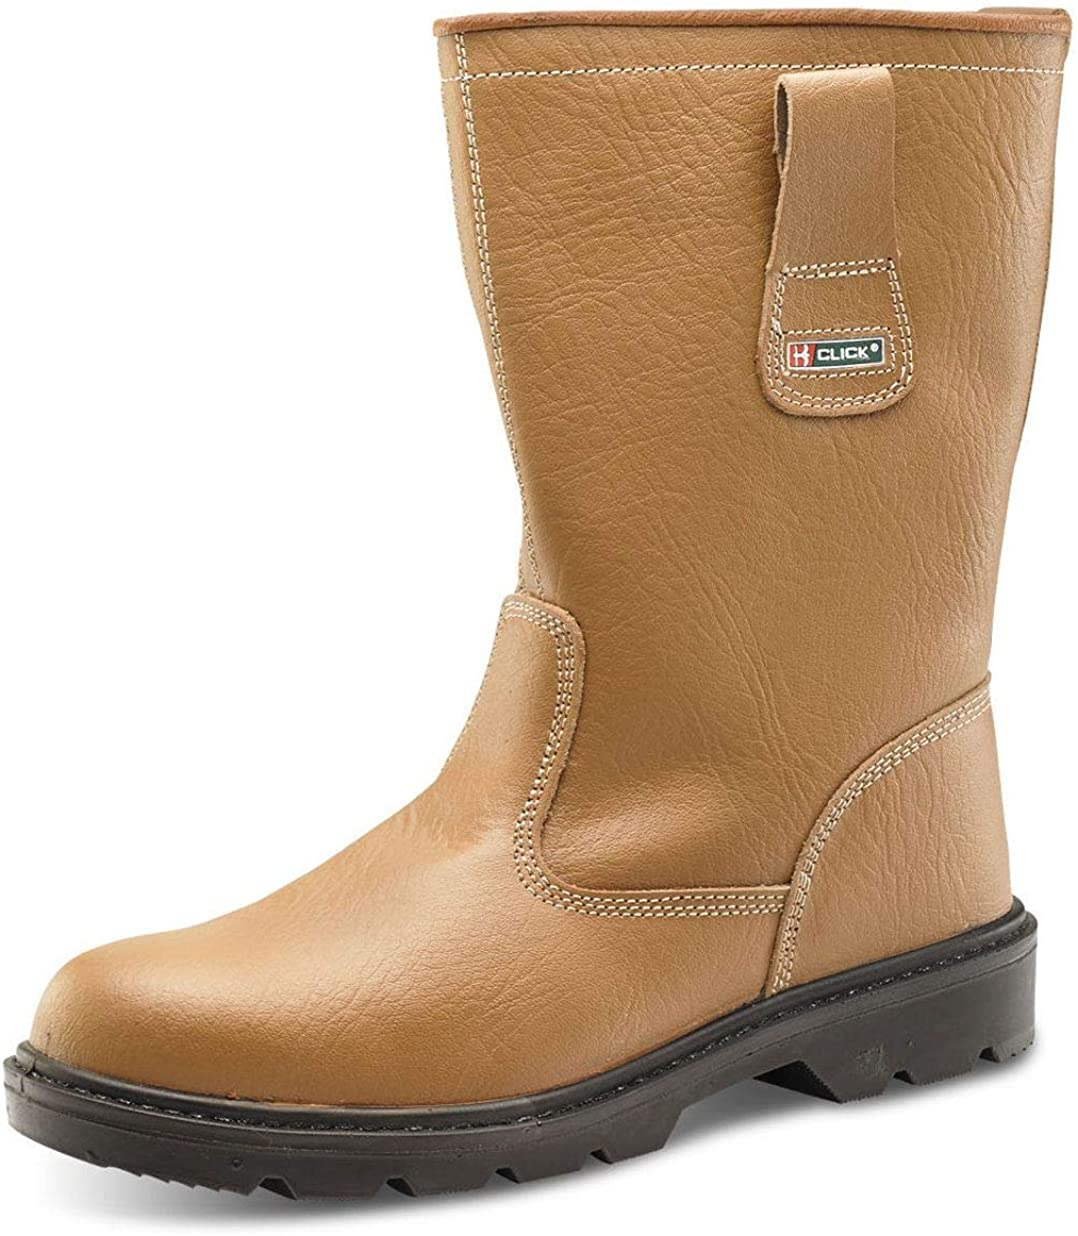 MENS TAN MID SOLE LEATHER SAFETY STEEL TOE CAP RIGGER FUR LINED BOOTS SIZE 9